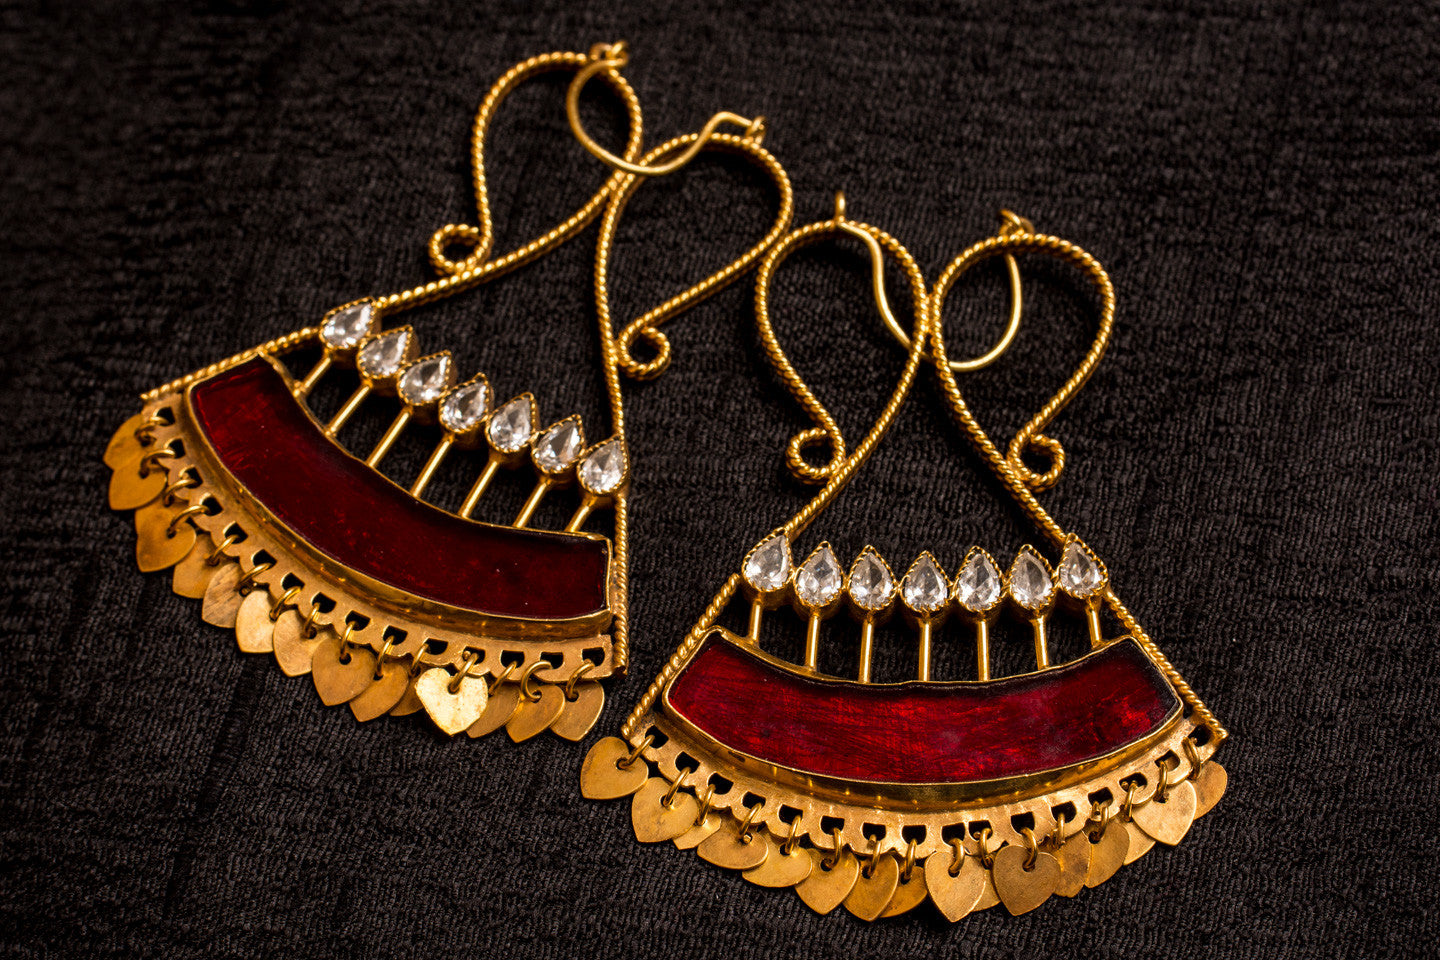 20a435-silver-gold-plated-amrapali-earrings-red-enamel-zircon